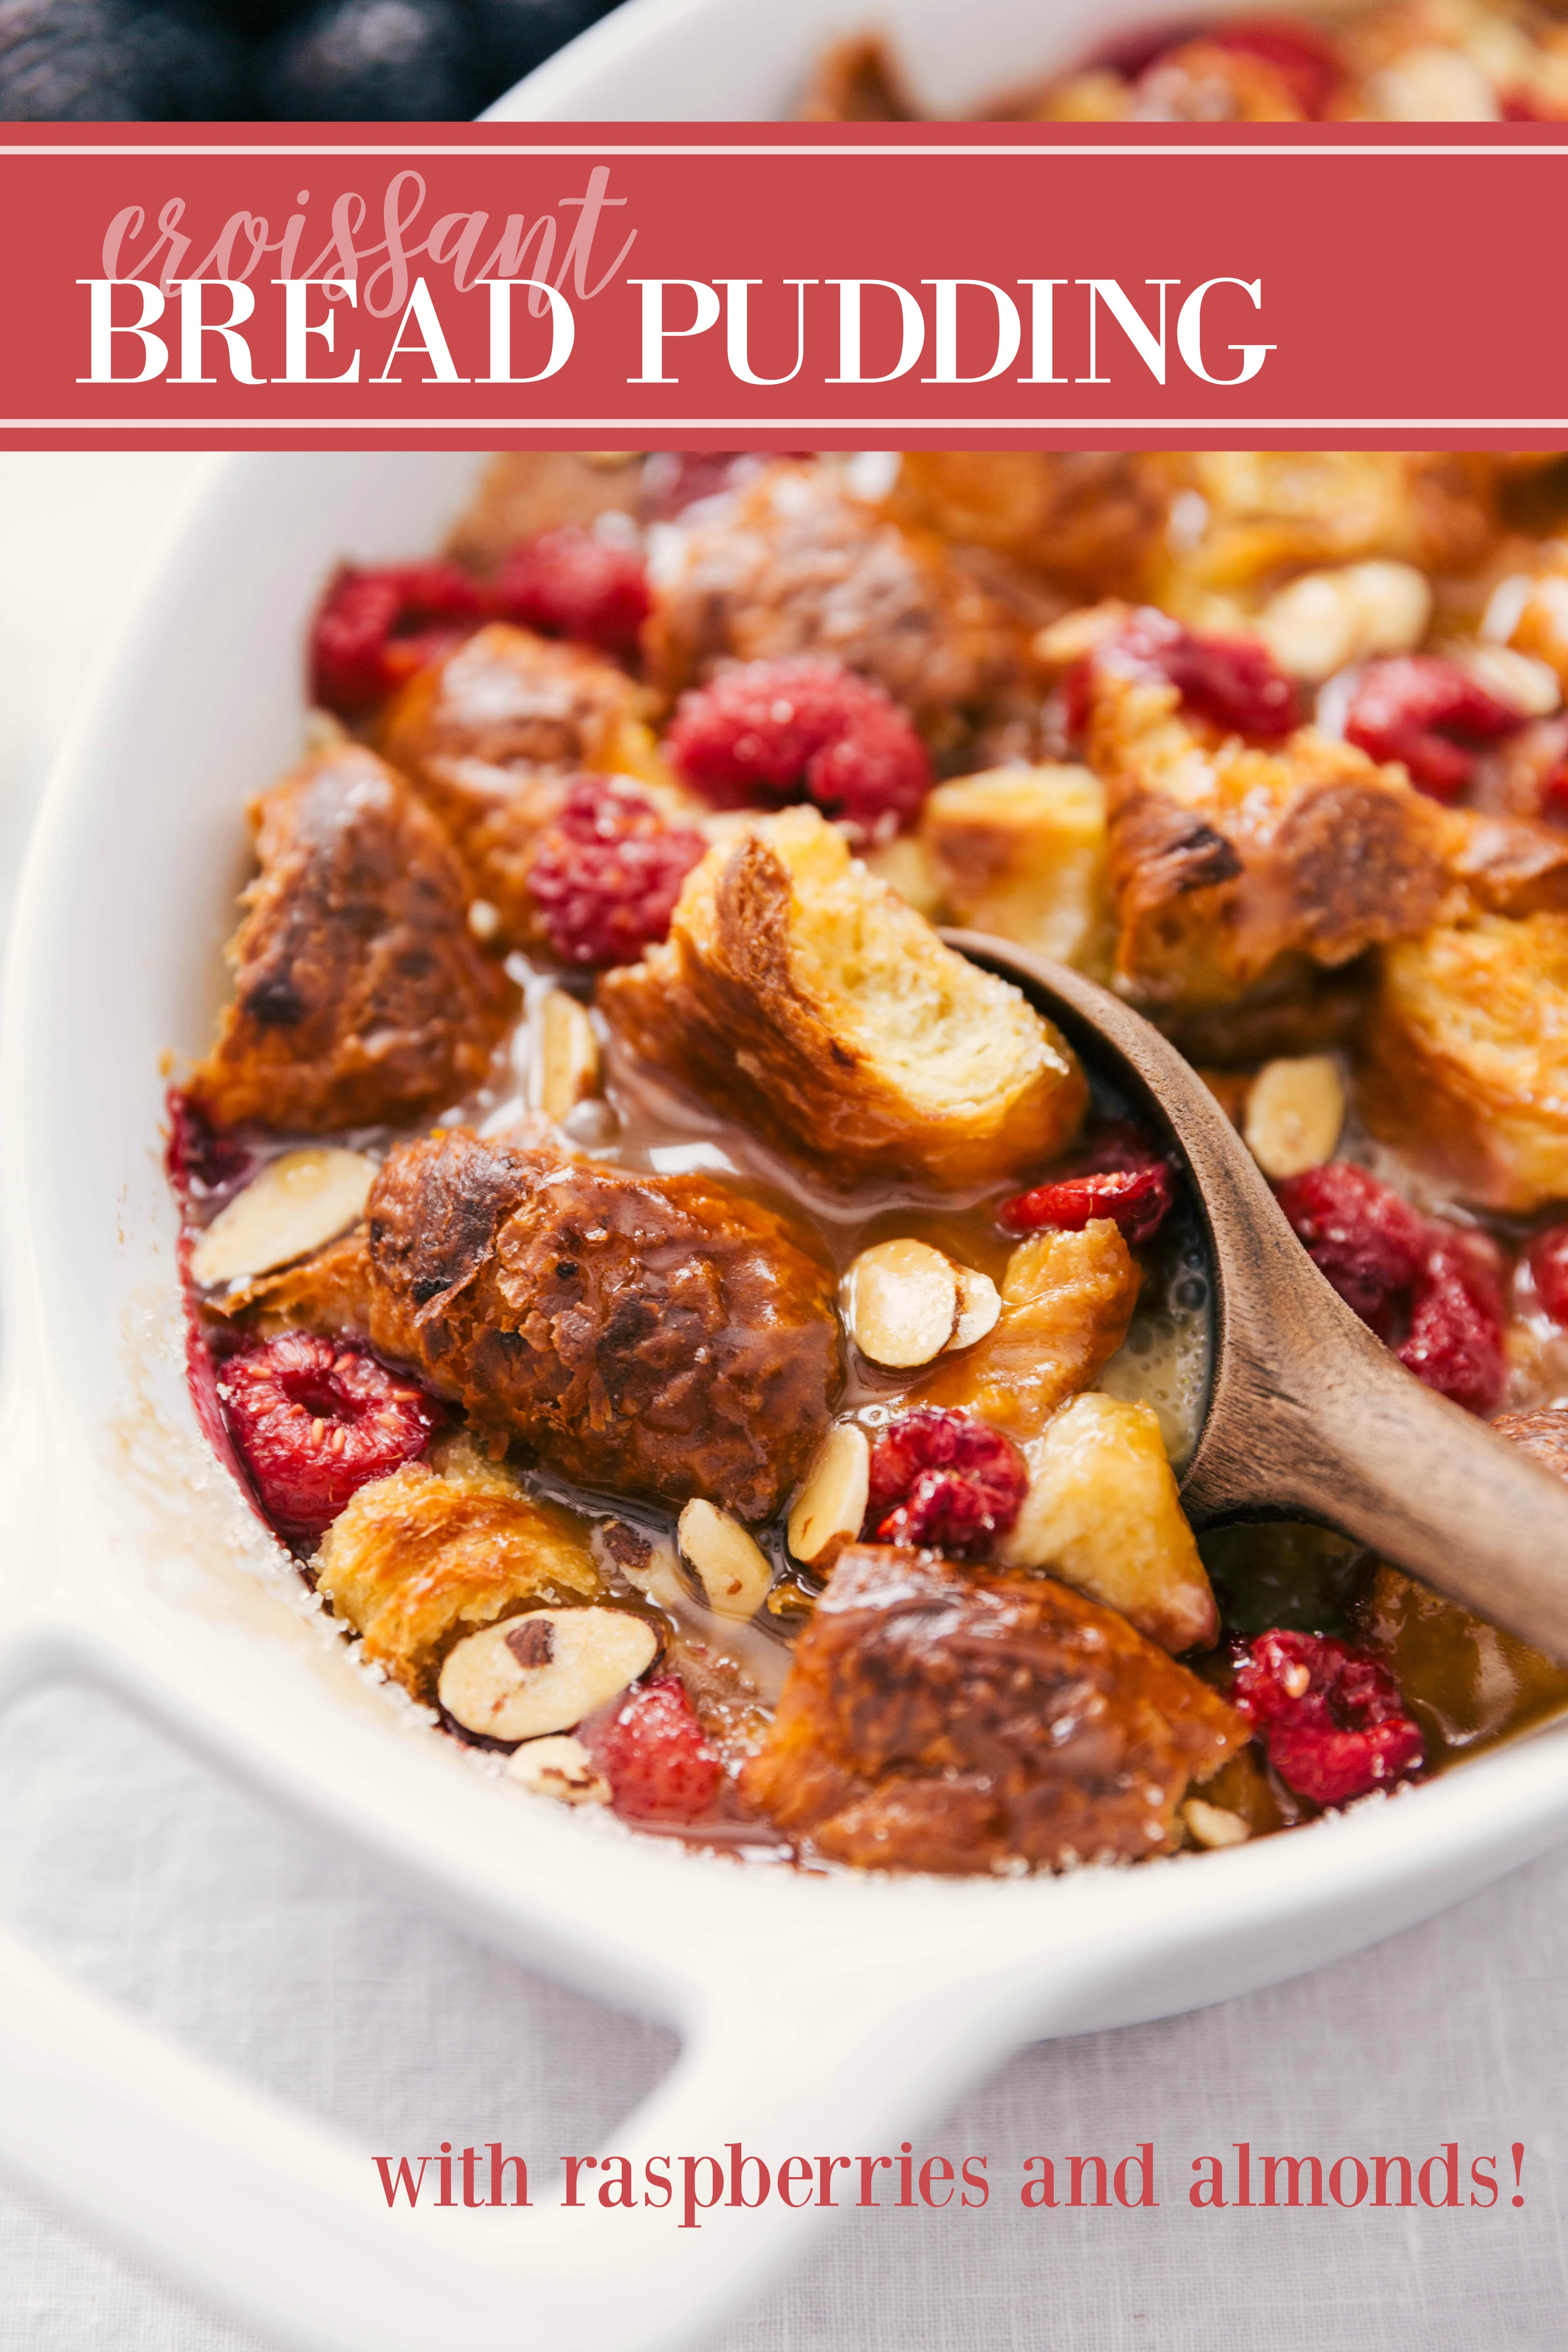 The best homemade bread pudding recipe with fresh raspberries, whipped cream, and a delicious vanilla sauce. Tips & tricks plus a few secret ingredients! via chelseasmessyapron.com #bread #pudding #recipe #easy #quick #kid #friendly #dessert #breakfast #brunch #shower #croissant #custard